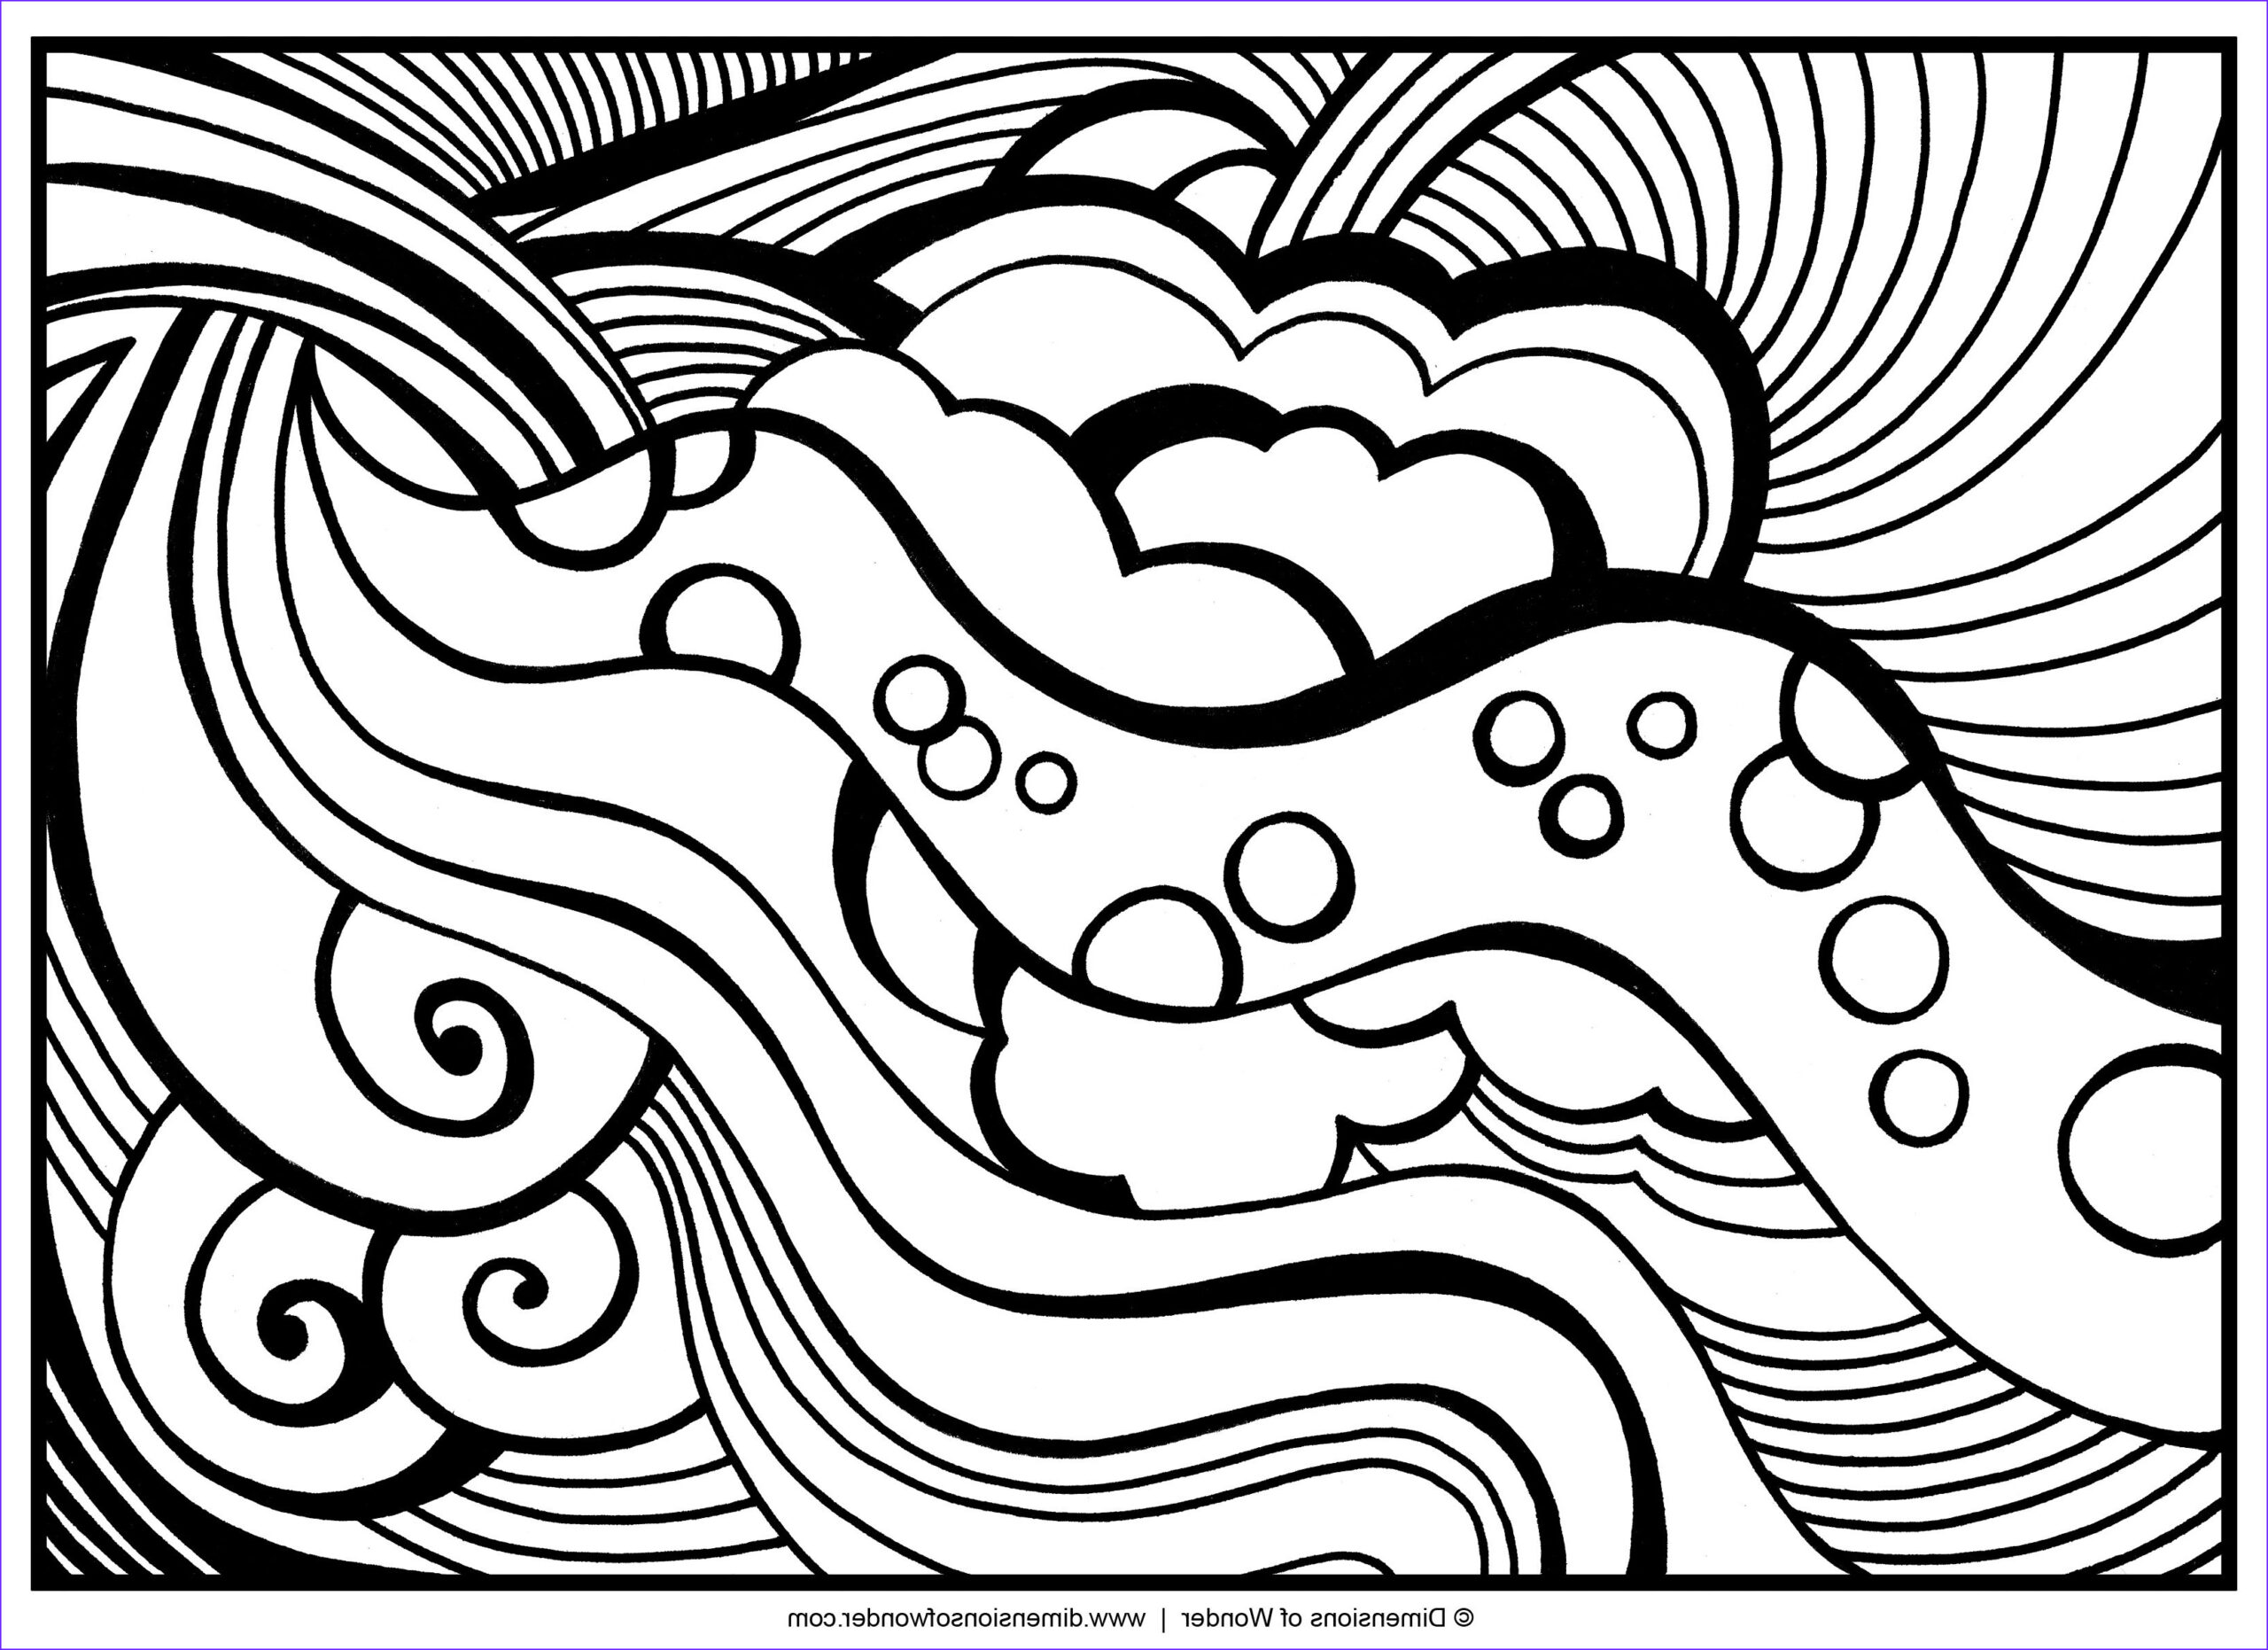 Simple Adult Coloring Pages Beautiful Images Abstract Coloring Pages Free